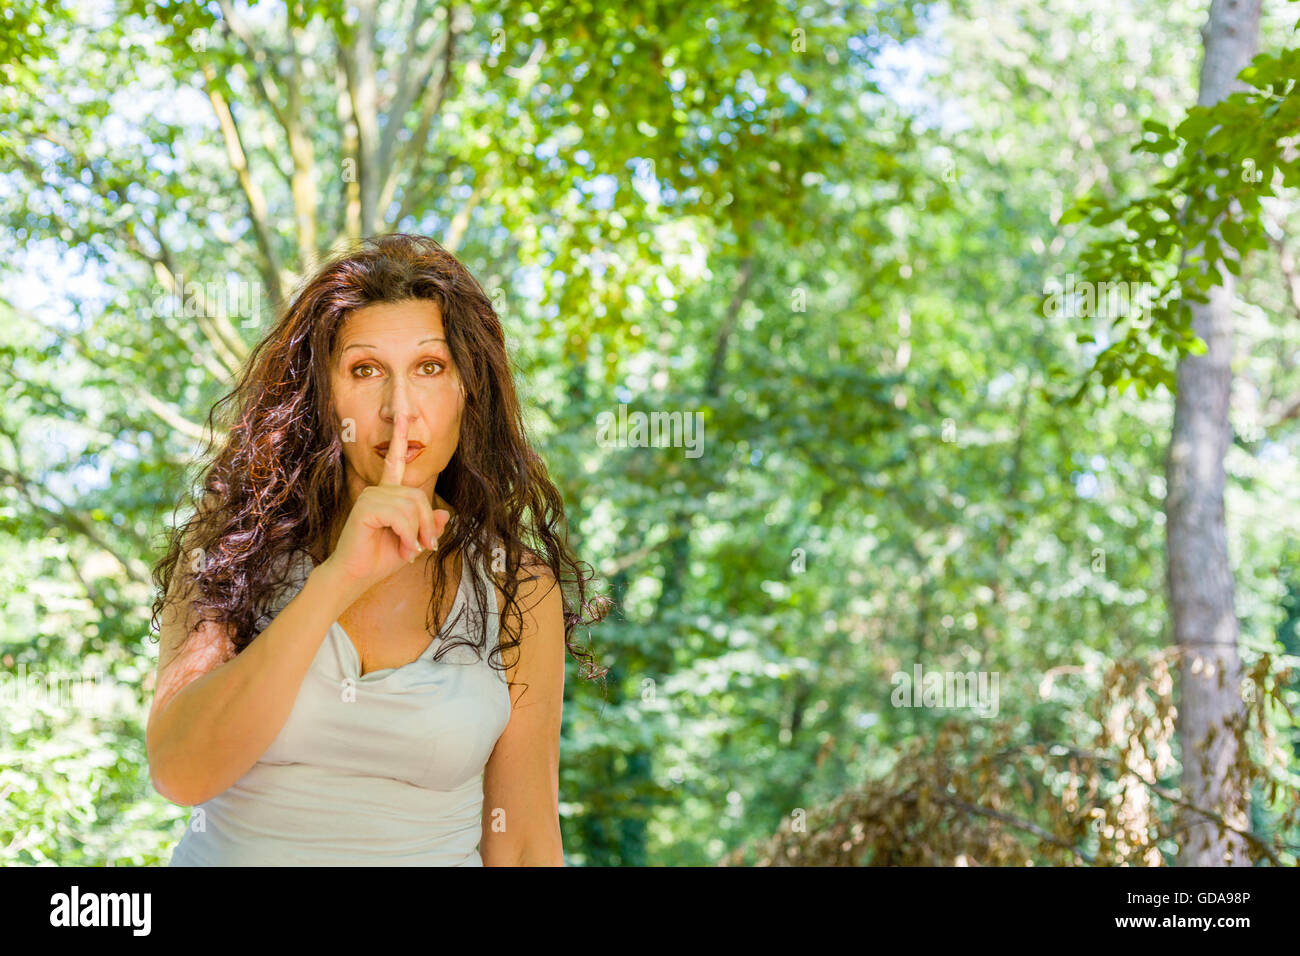 Curvy classy mature woman put index finger to lips for silence in ...